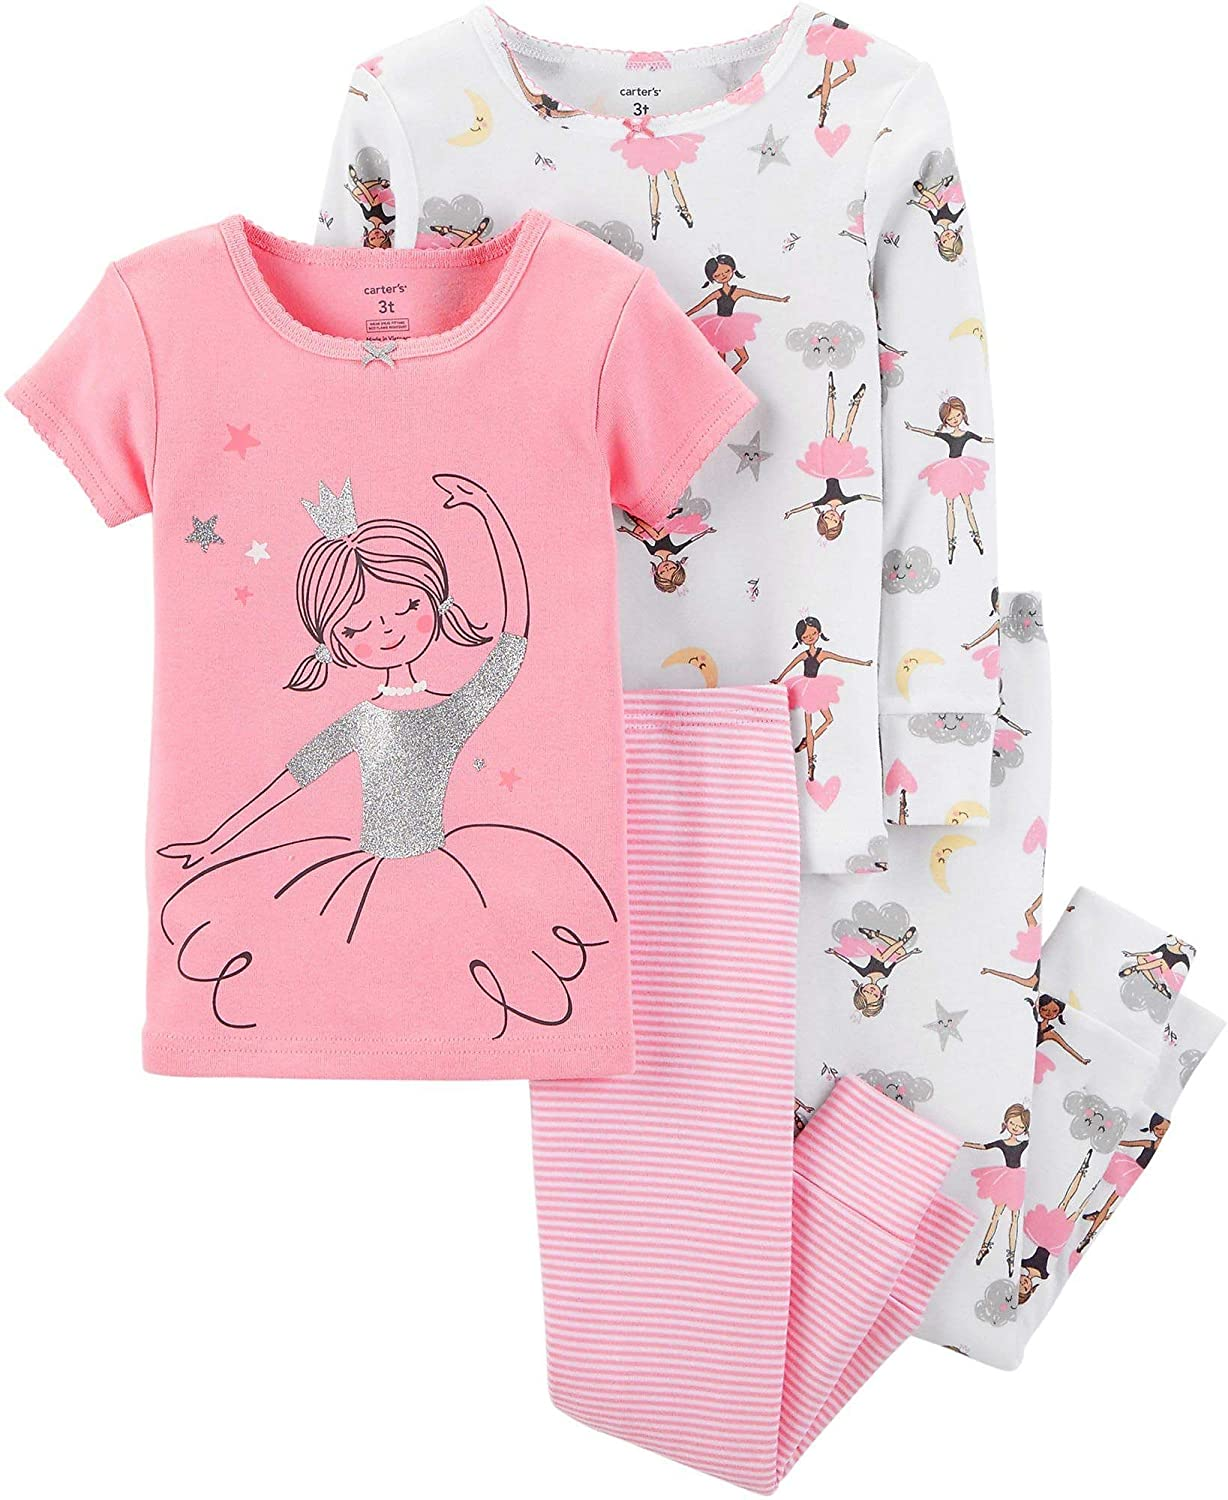 17d11945a Amazon.com  Carter s Baby Girls  4 Pc Cotton 331g170  Clothing